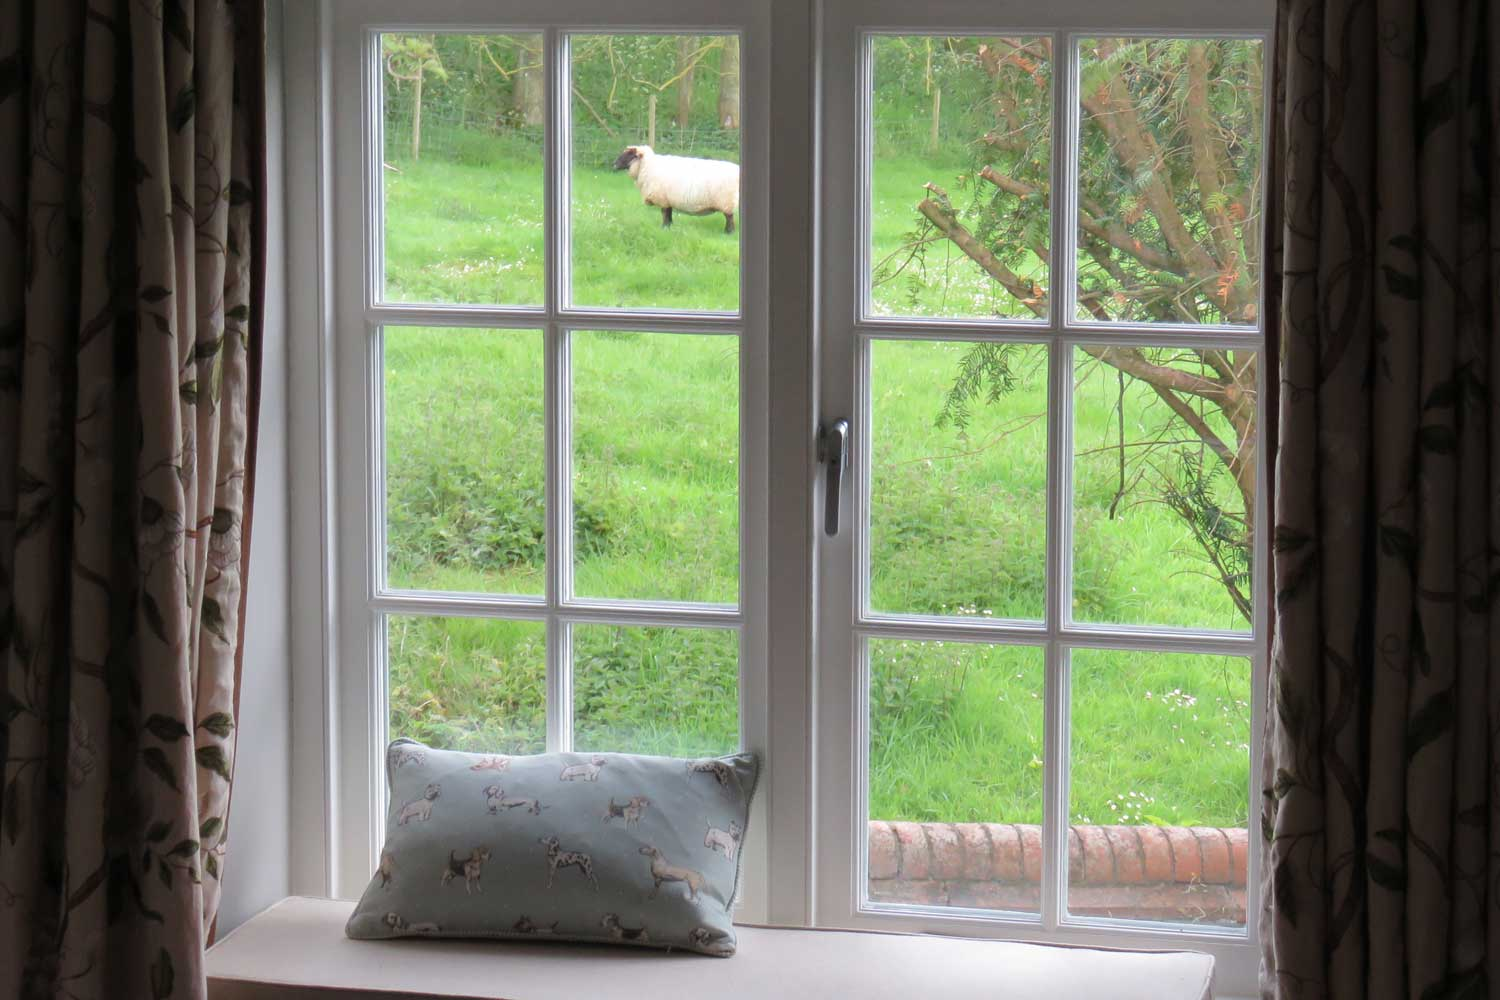 Idyllic Countryside | Bed & Breakfast, Nether Wallop, River Test Valley, England